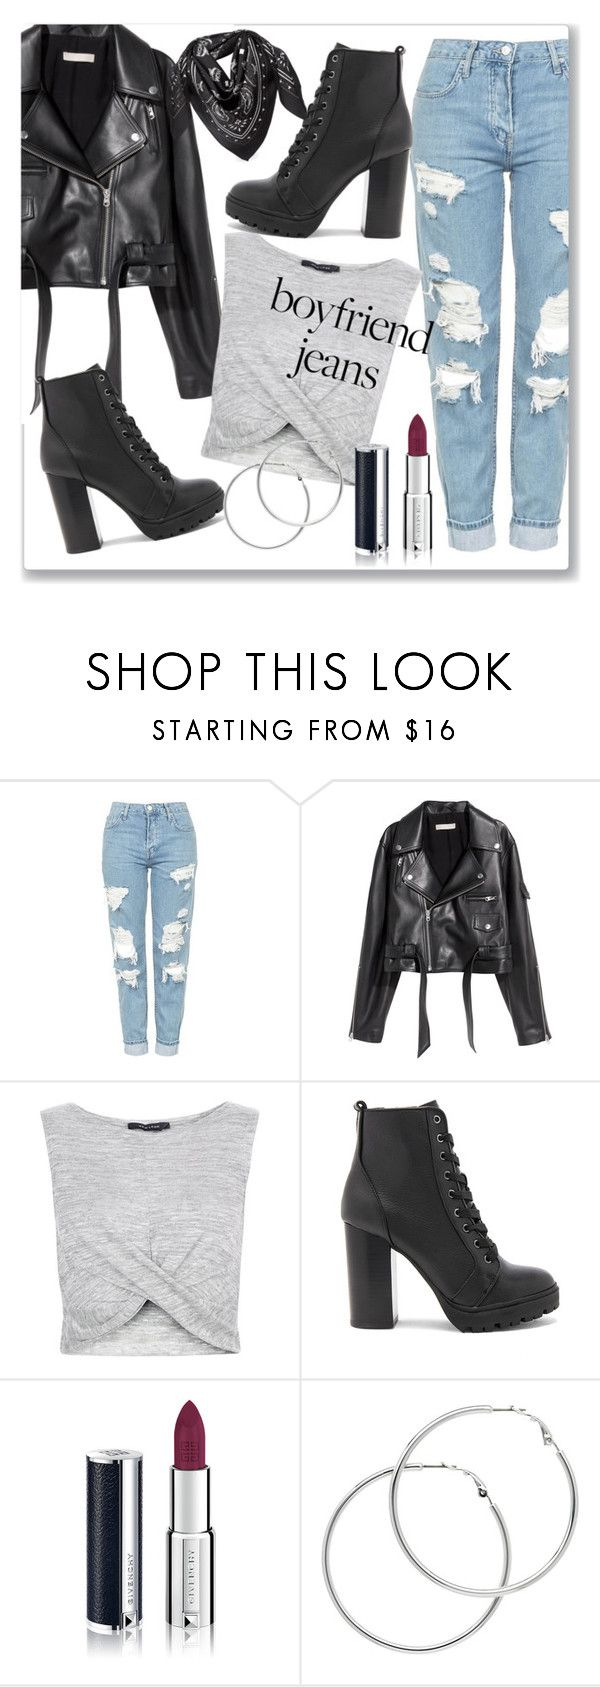 """Boyfriend Jeans"" by chulipatin ❤ liked on Polyvore featuring Topshop, SKINN, New Look, Steve Madden, Givenchy, Melissa Odabash and MCM"